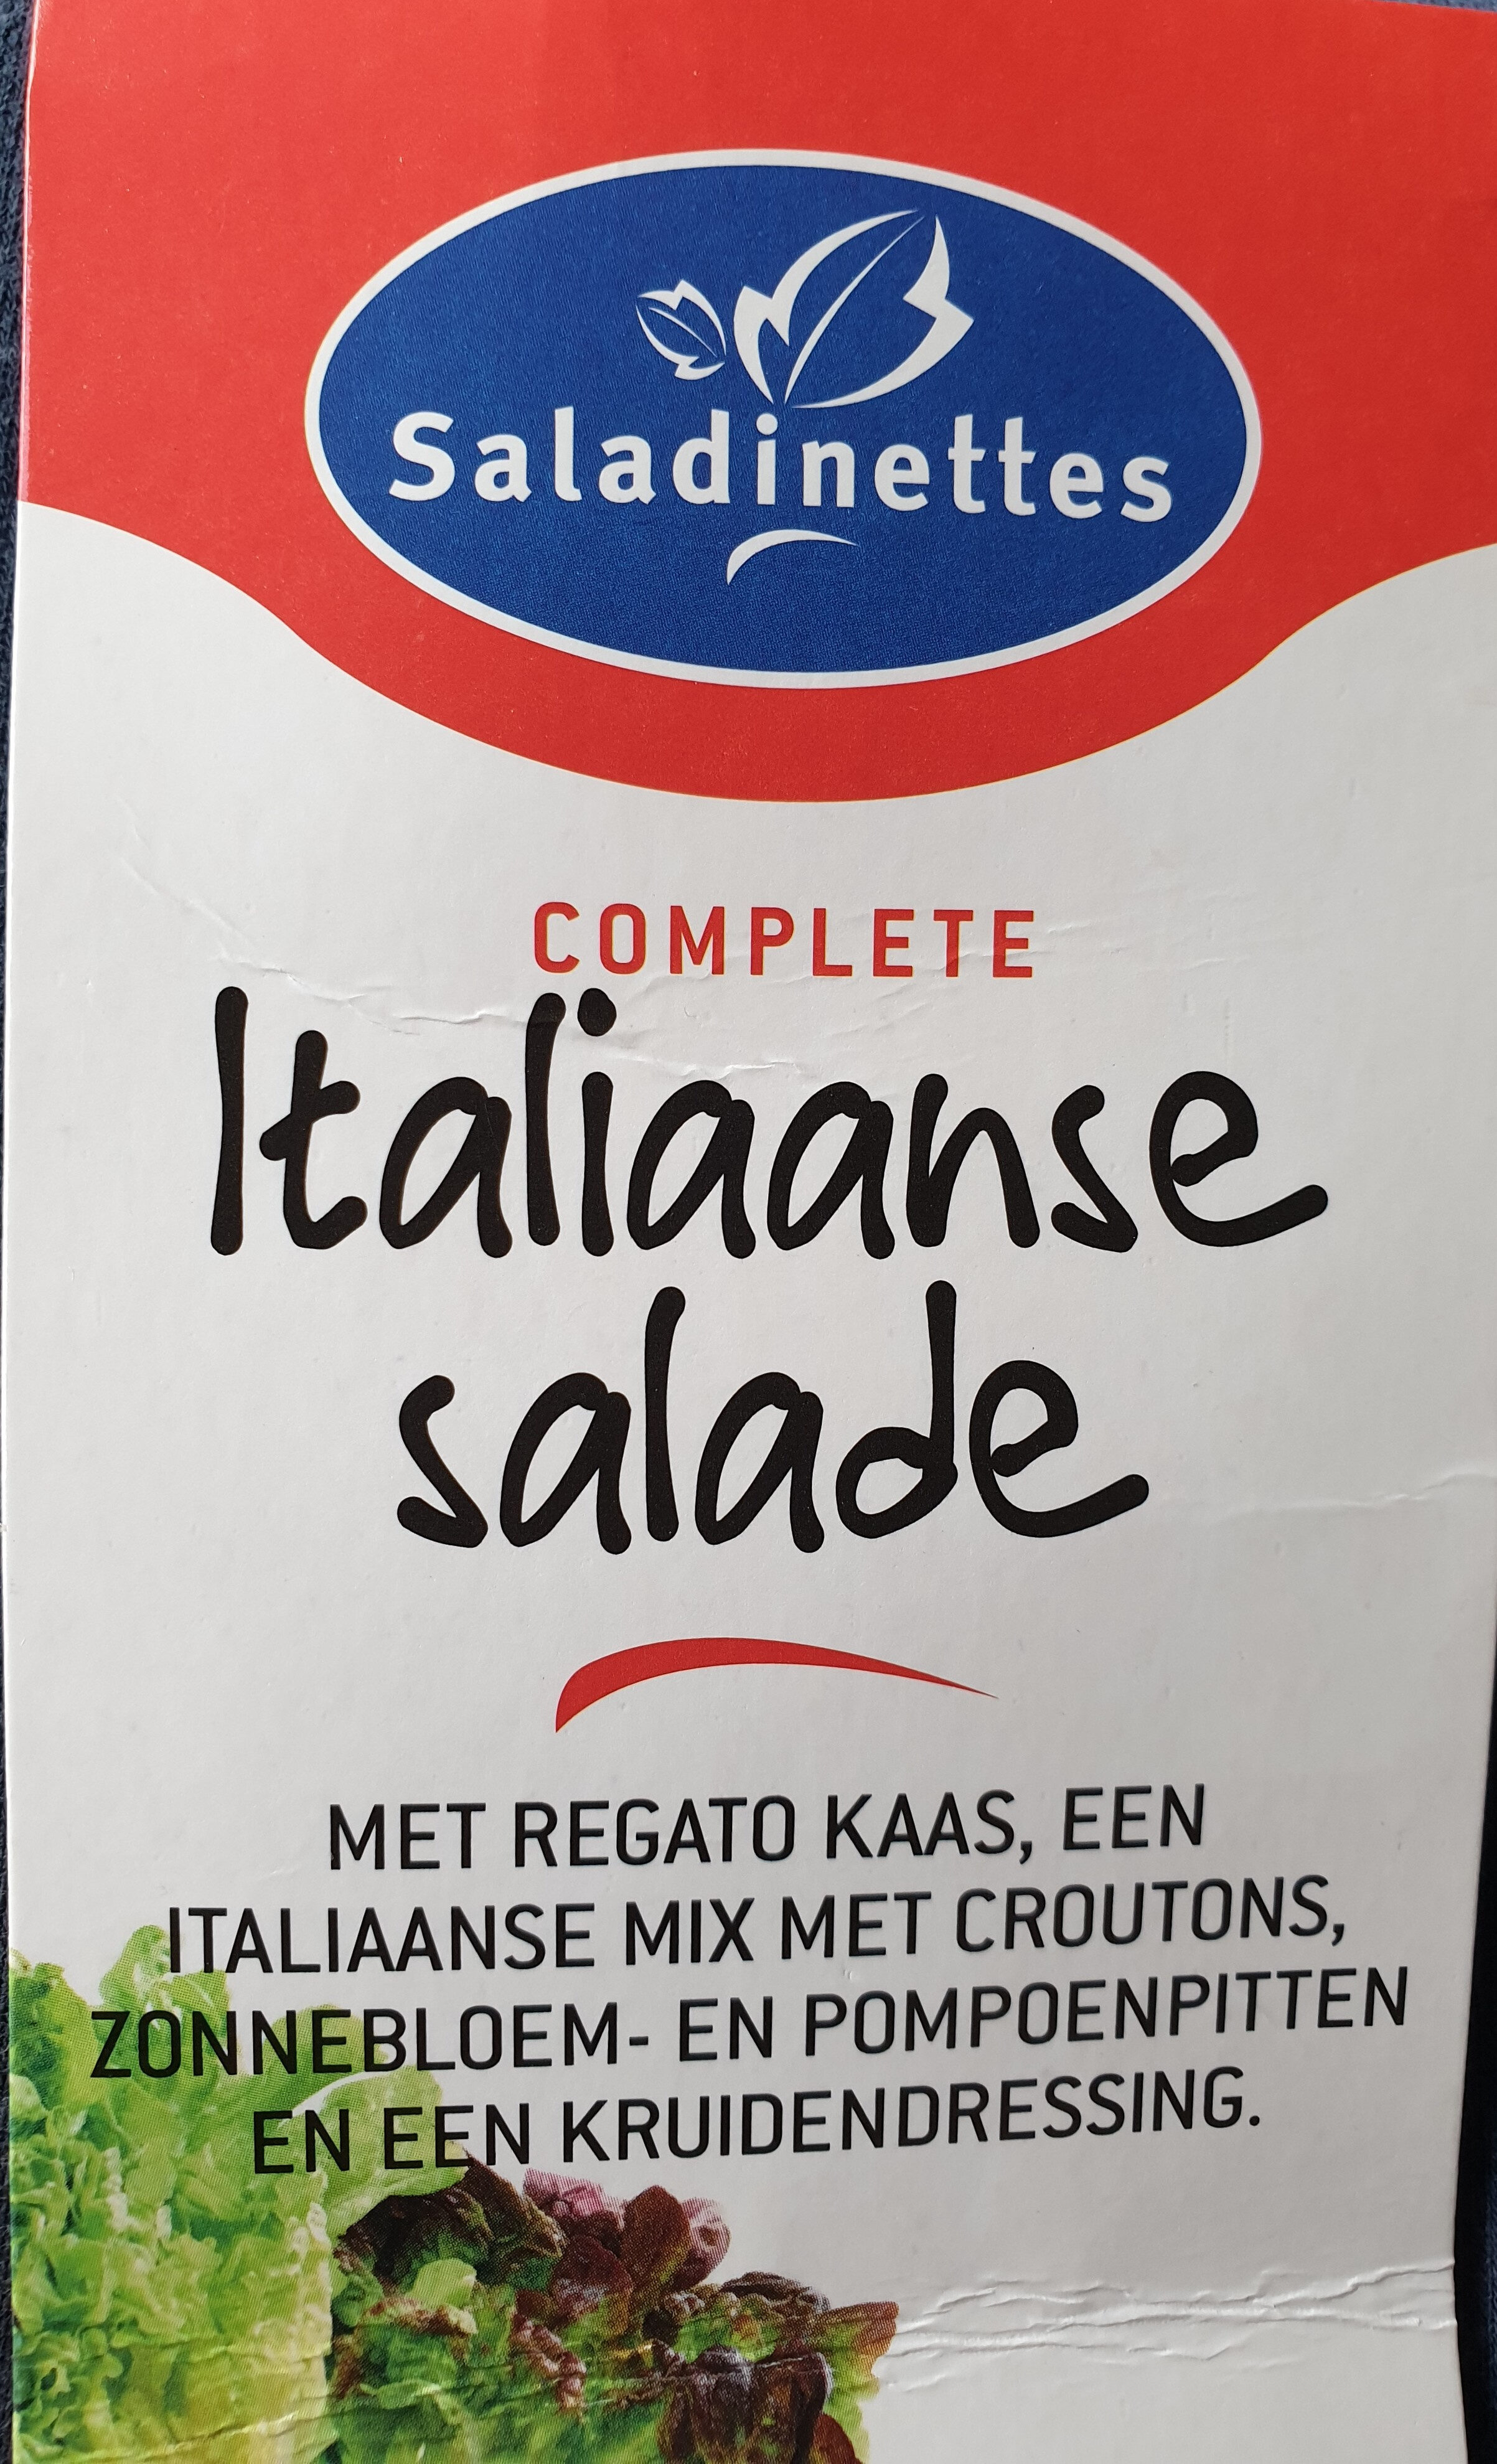 Complete Italiaanse salade - Product